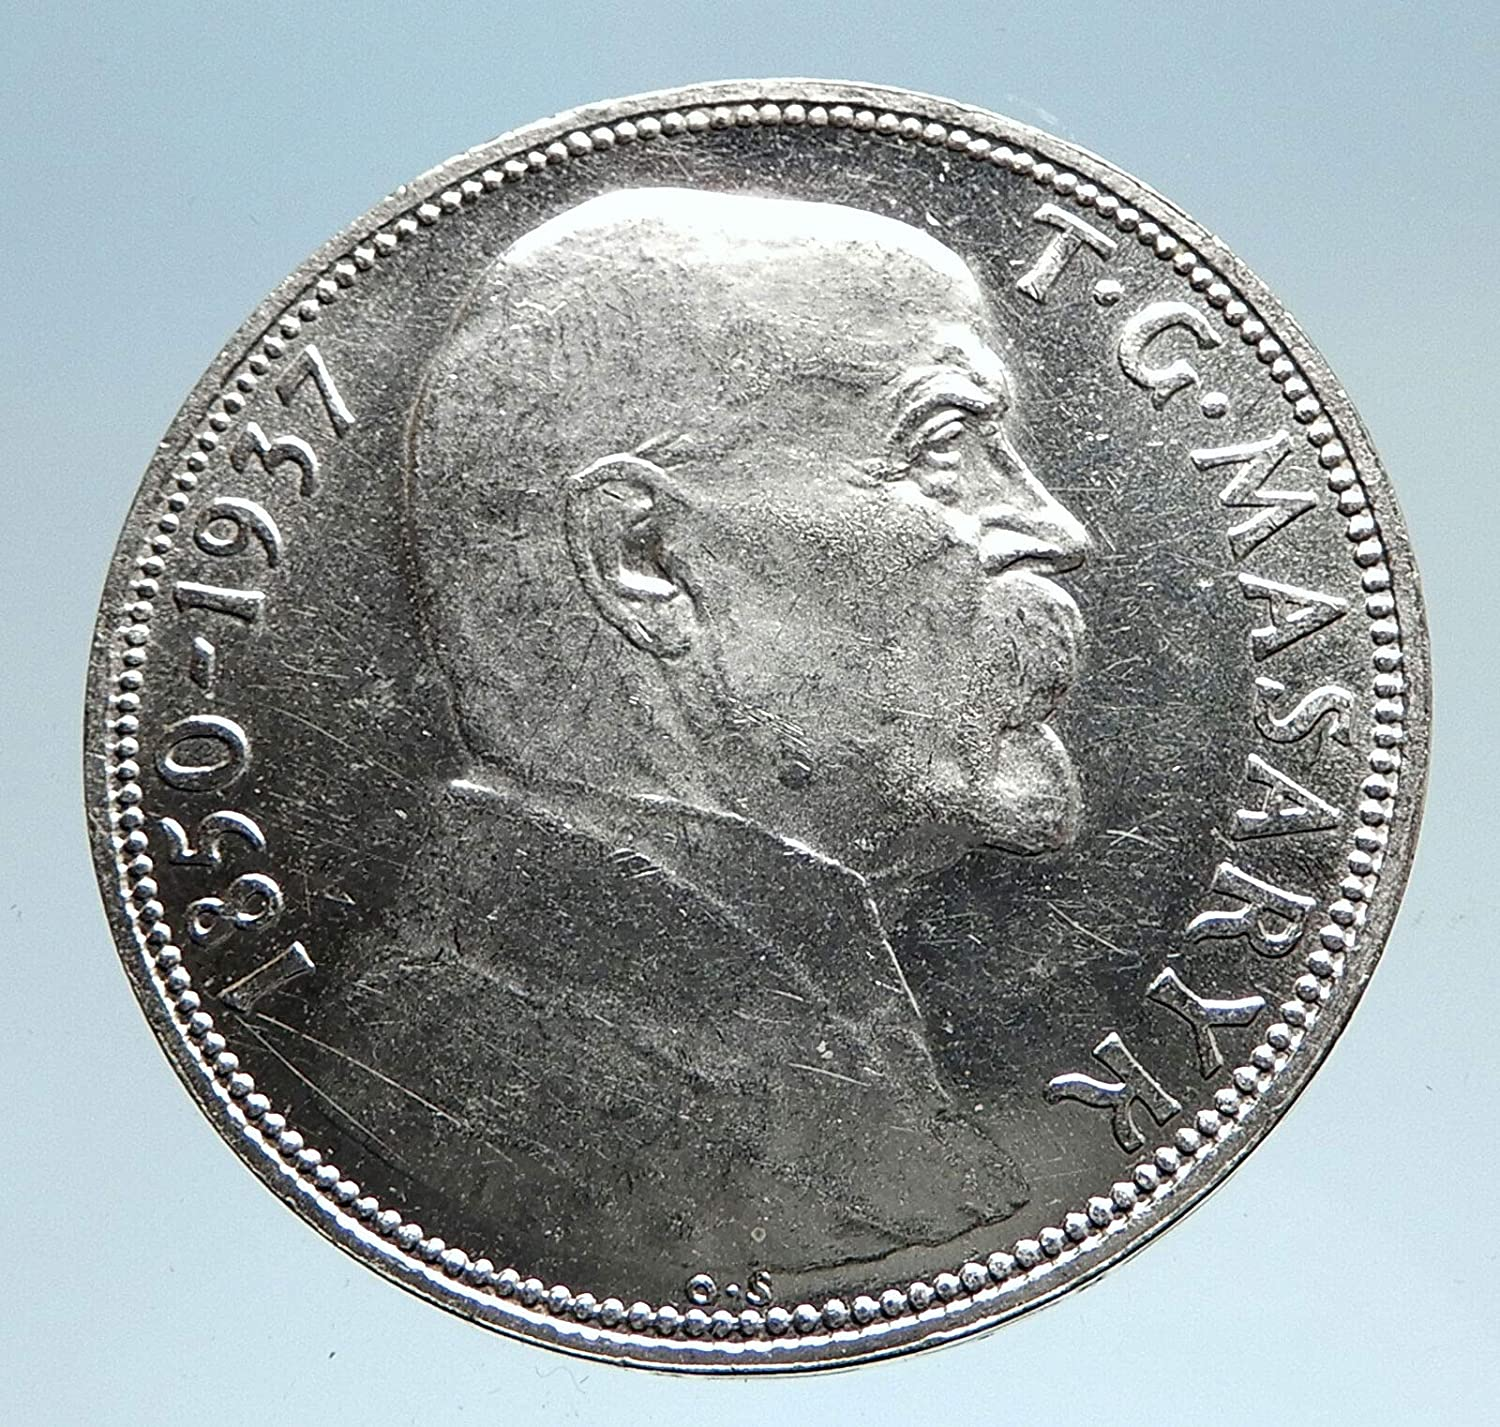 1937 unknown 1937 CZECHOSLOVAKIA President Masaryk Genuine